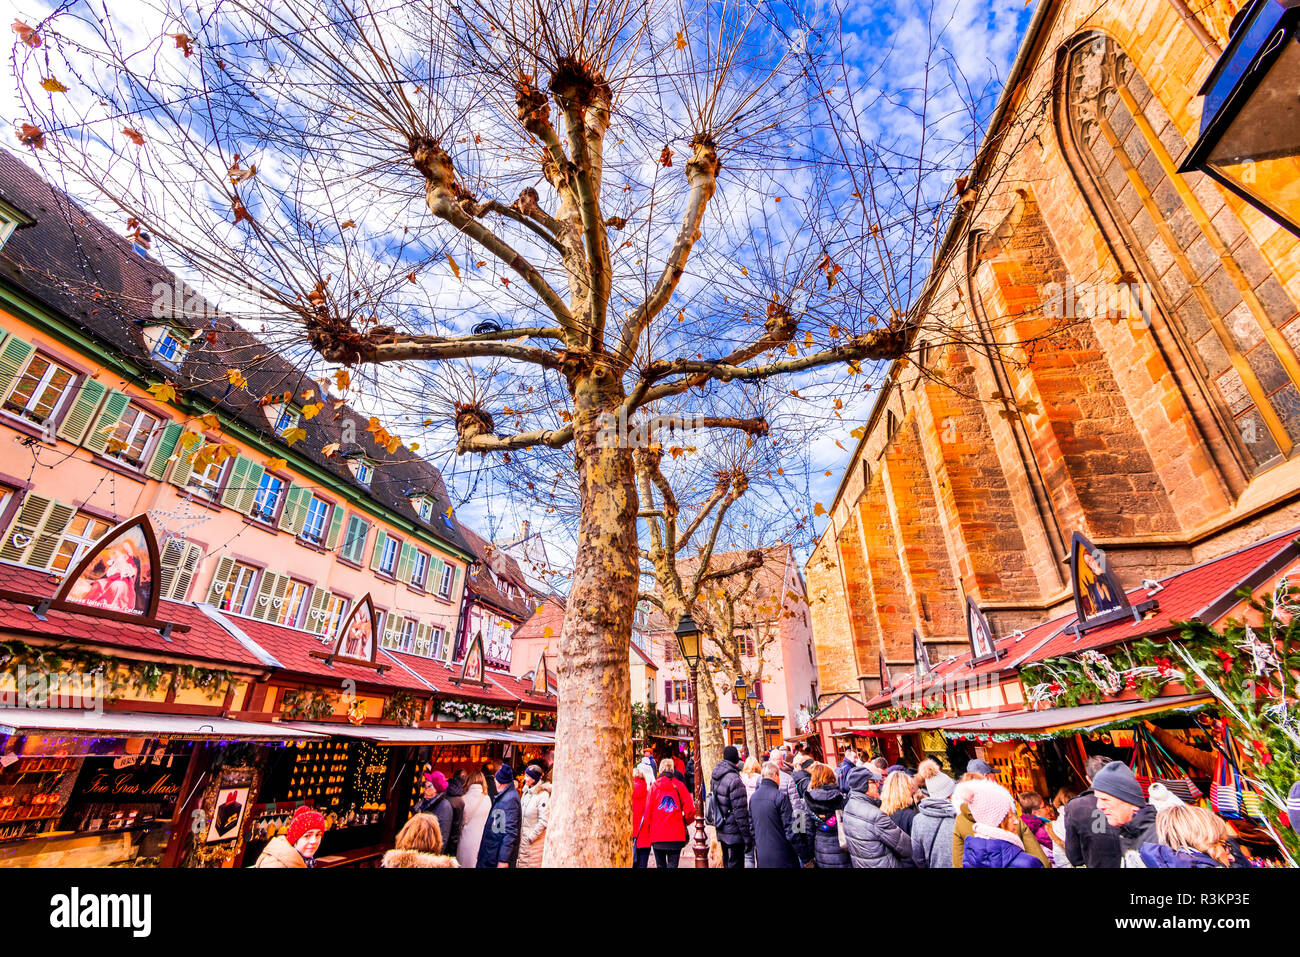 Colmar, France - December 2017. Christmas Market in Place de la Cathédrale, traditional Xmas decorated city in Alsace. - Stock Image